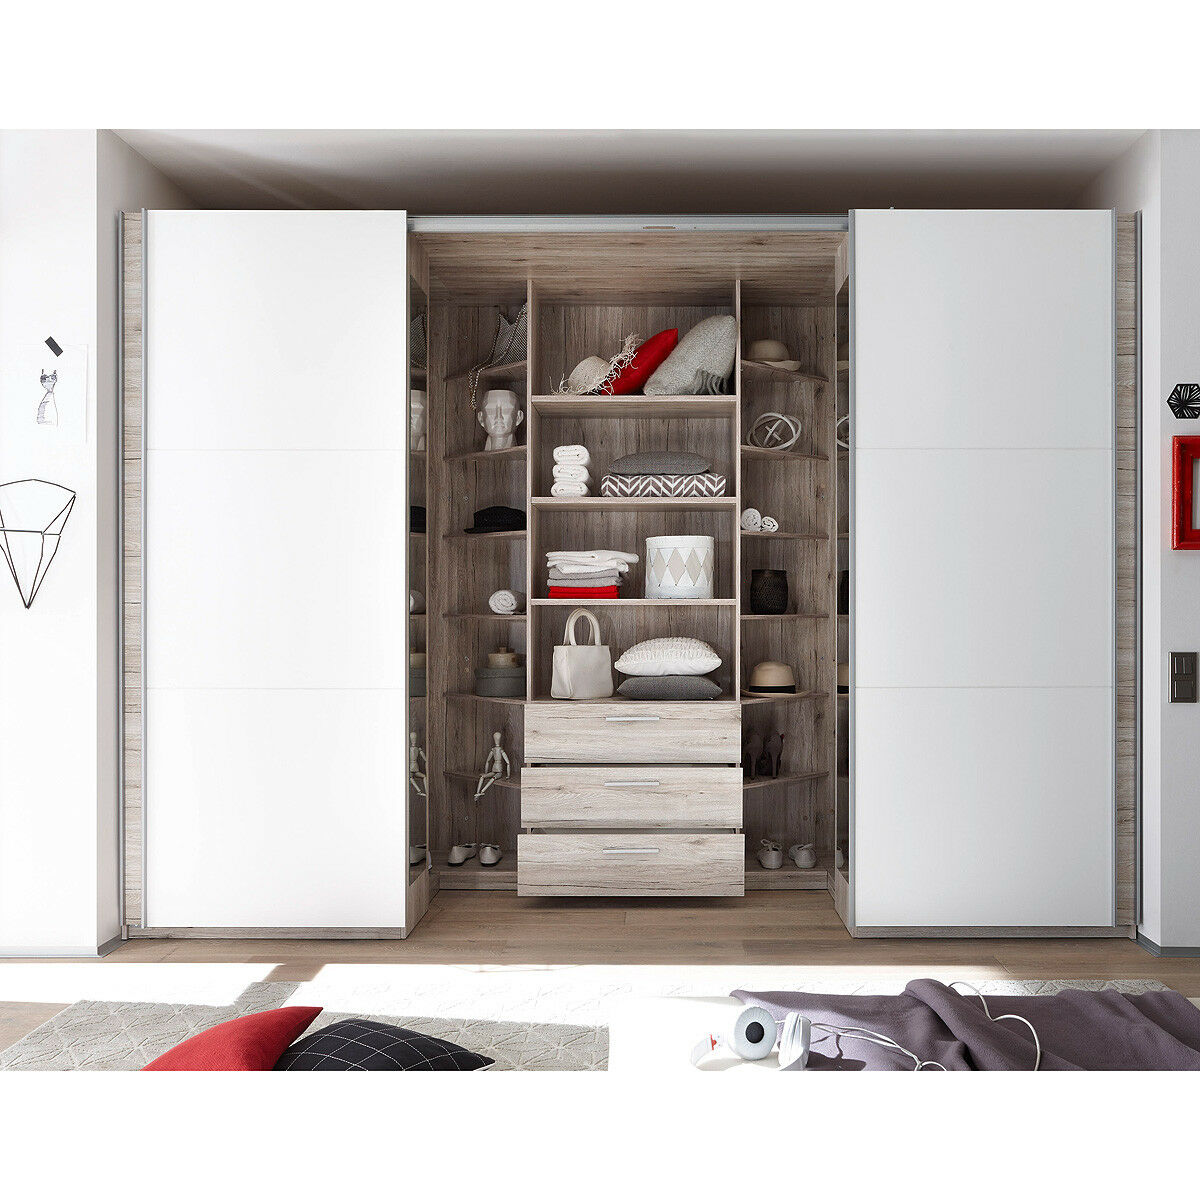 schwebet renschrank big kleiderschrank schrank begehbar in sandeiche wei 315 cm eur 899 95. Black Bedroom Furniture Sets. Home Design Ideas